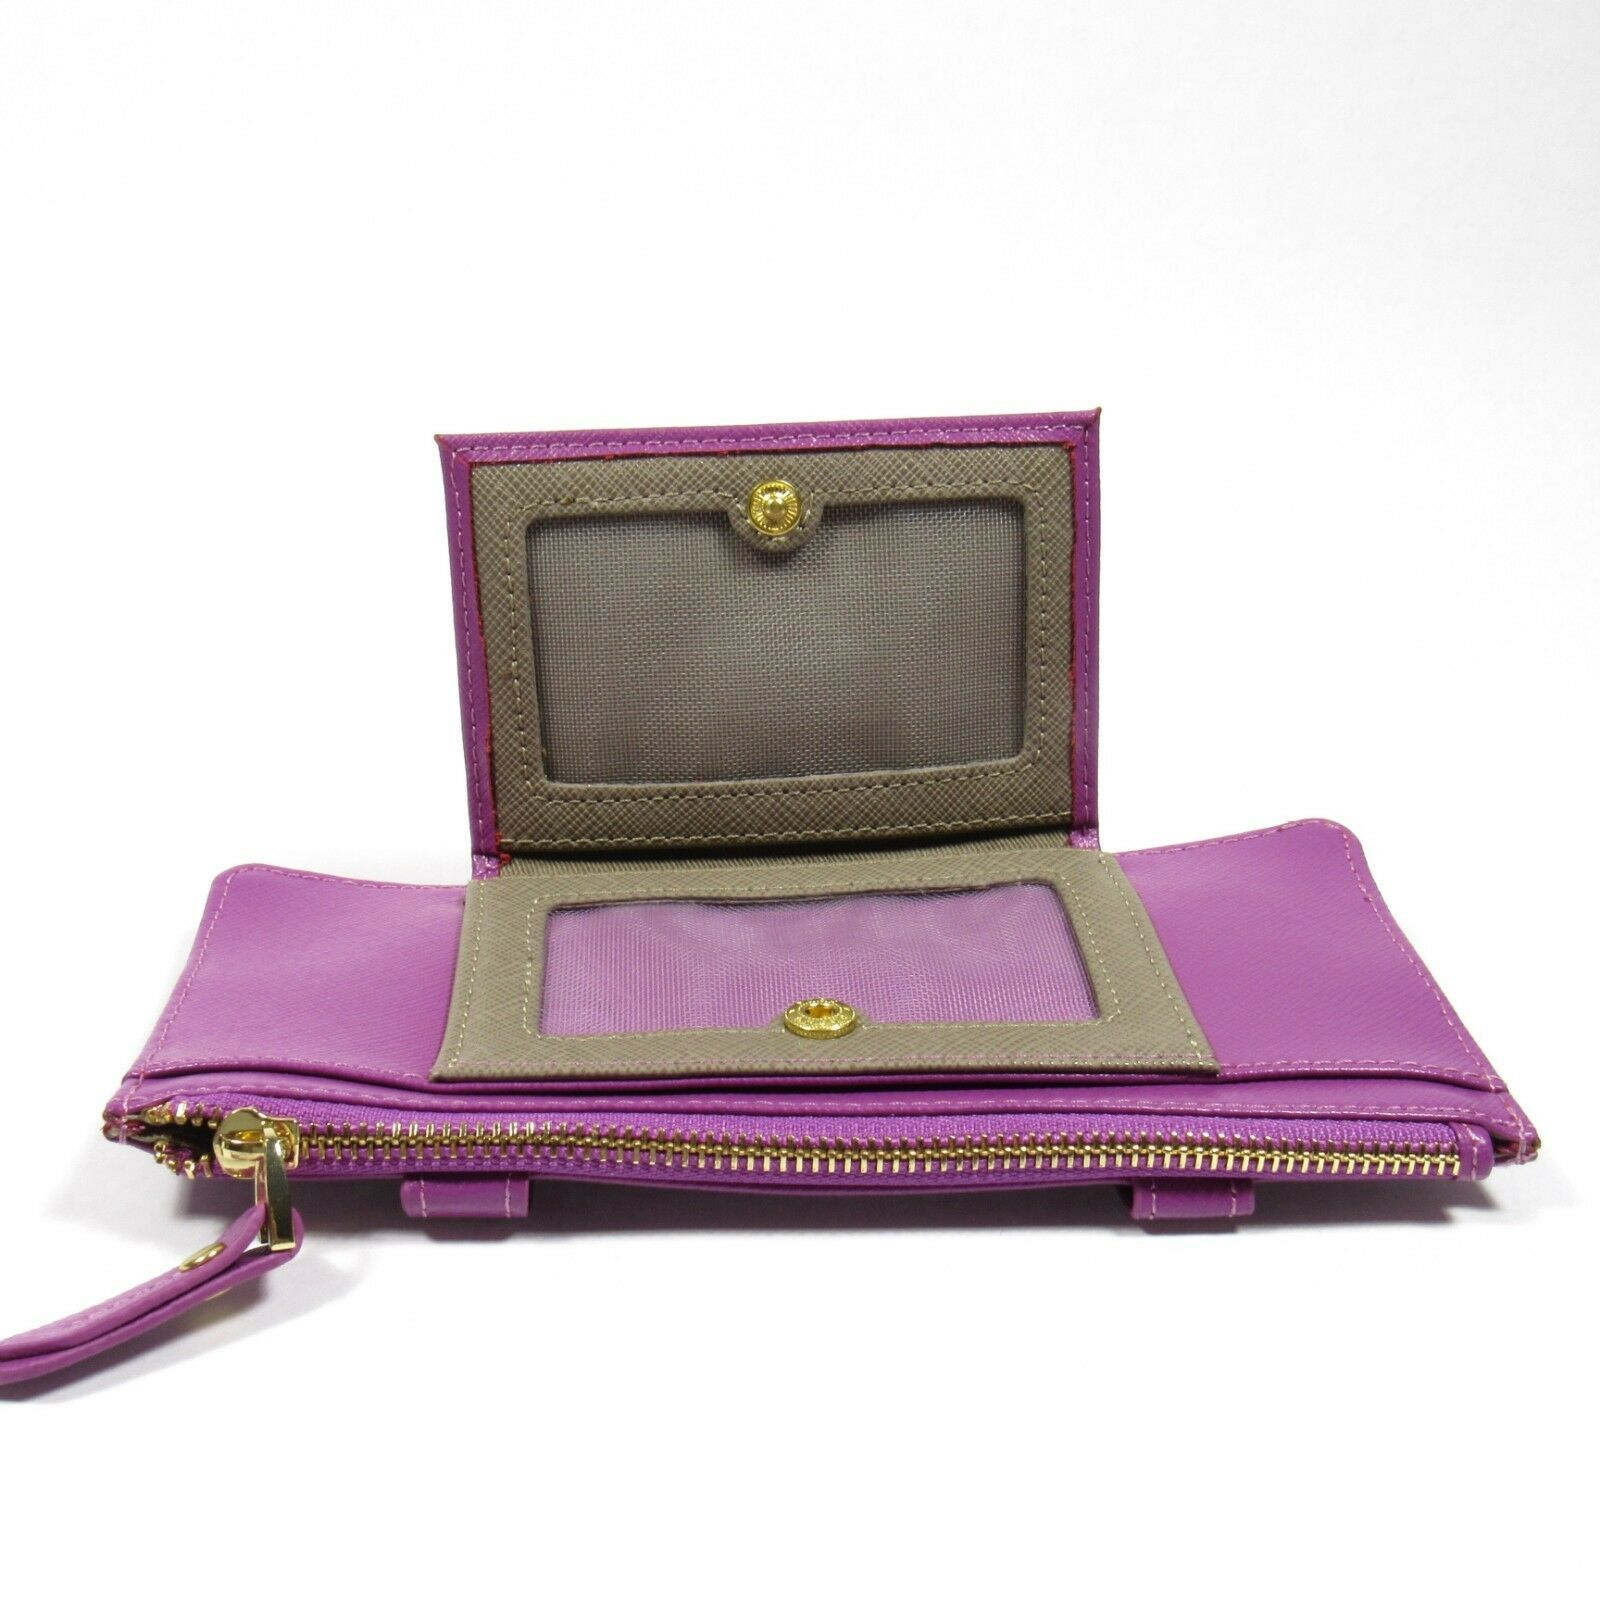 Neiman Marcus Women's ID Wallet Organizer Card Case Saffiano Leather. Lavender